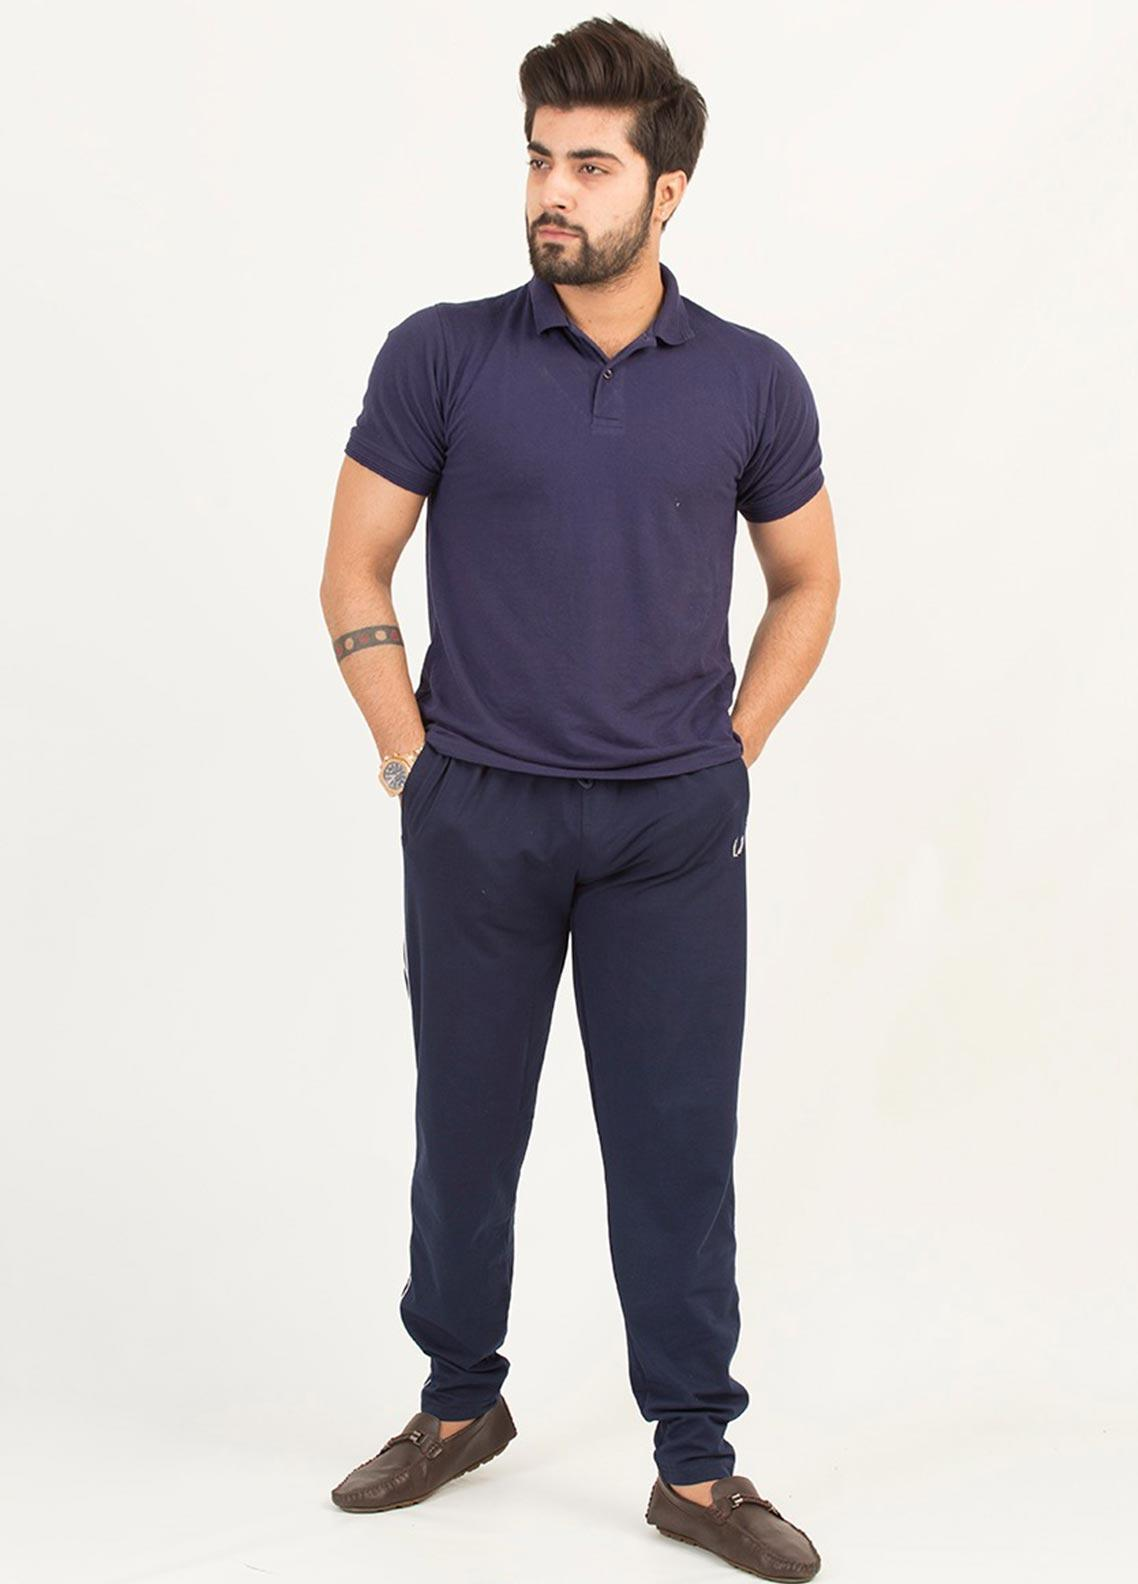 UC Clothing Lycra Casual Trousers for Men -  03 Navy